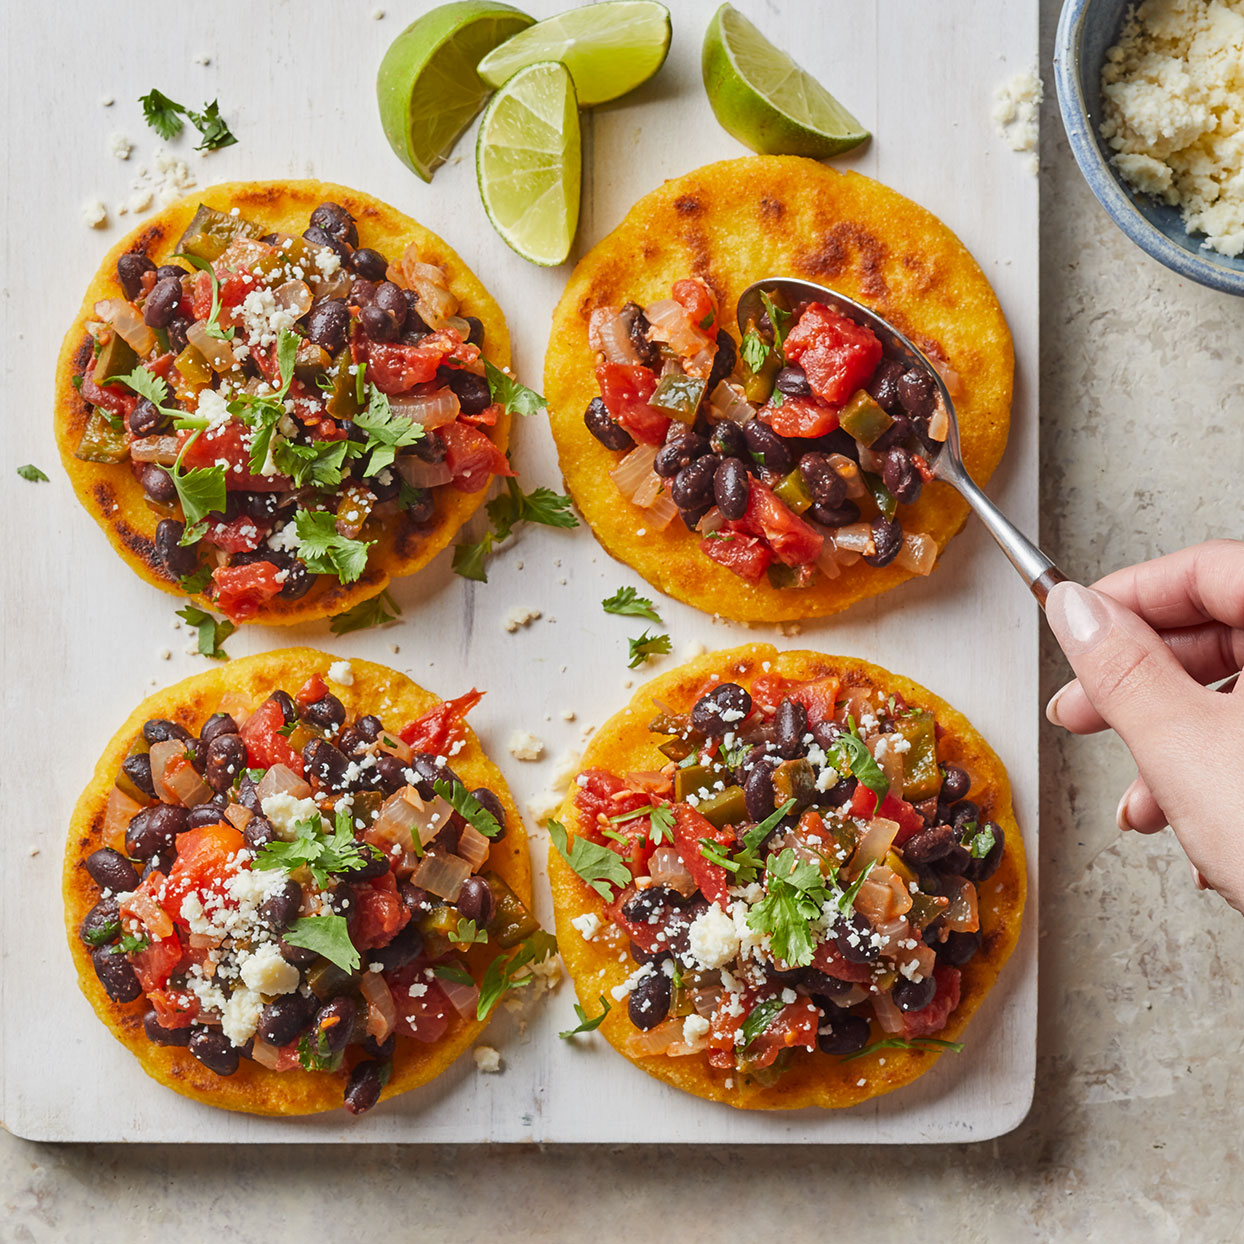 These corncakes are a common style of flatbread in Colombia and Venezuela. Arepas are made with precooked cornmeal and served warmed with butter or cheese, or split open and filled, or topped, as we've done here. Our arepas filling is loaded with fragrant spices and vegetables to elevate the dish. Source: EatingWell Magazine, December 2019